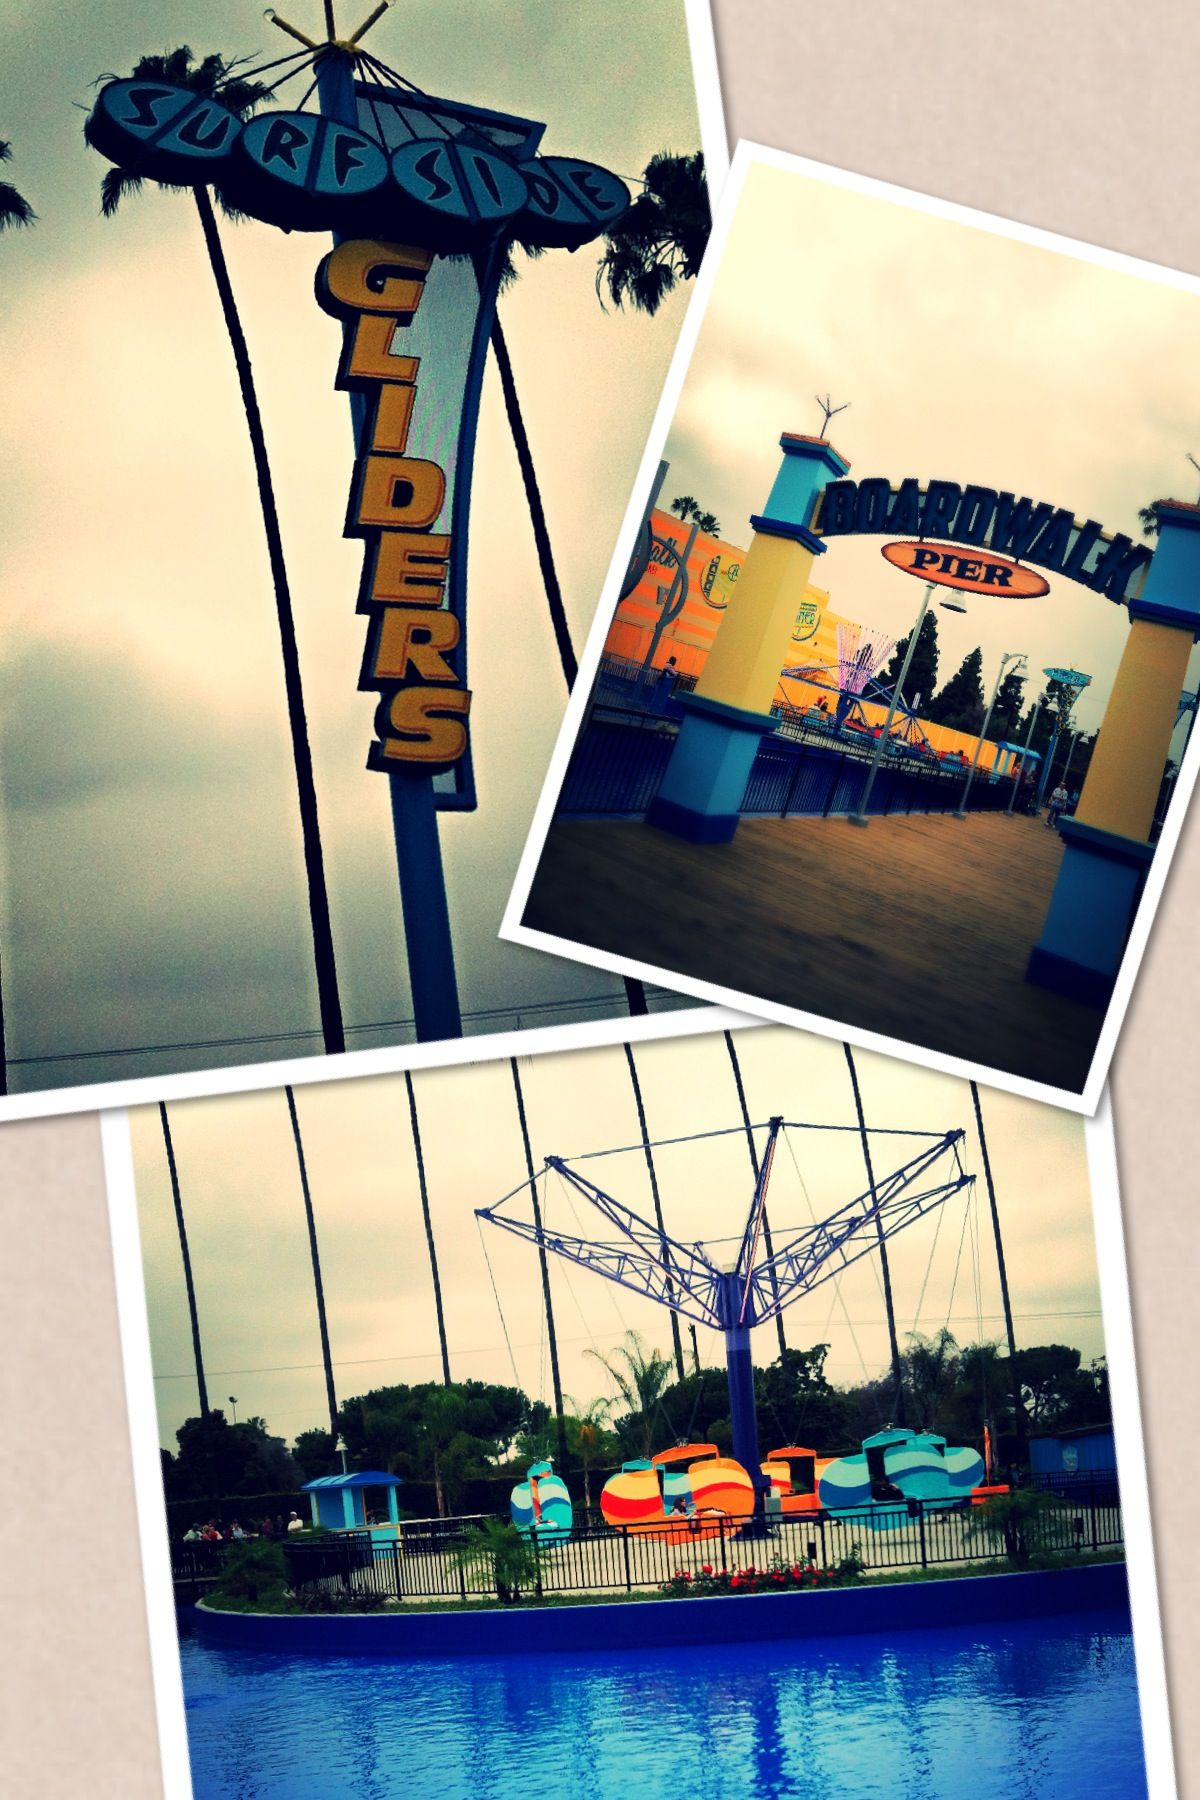 #KnottsBoardwalk ride Surfside Gliders use this ride to teach your kids science